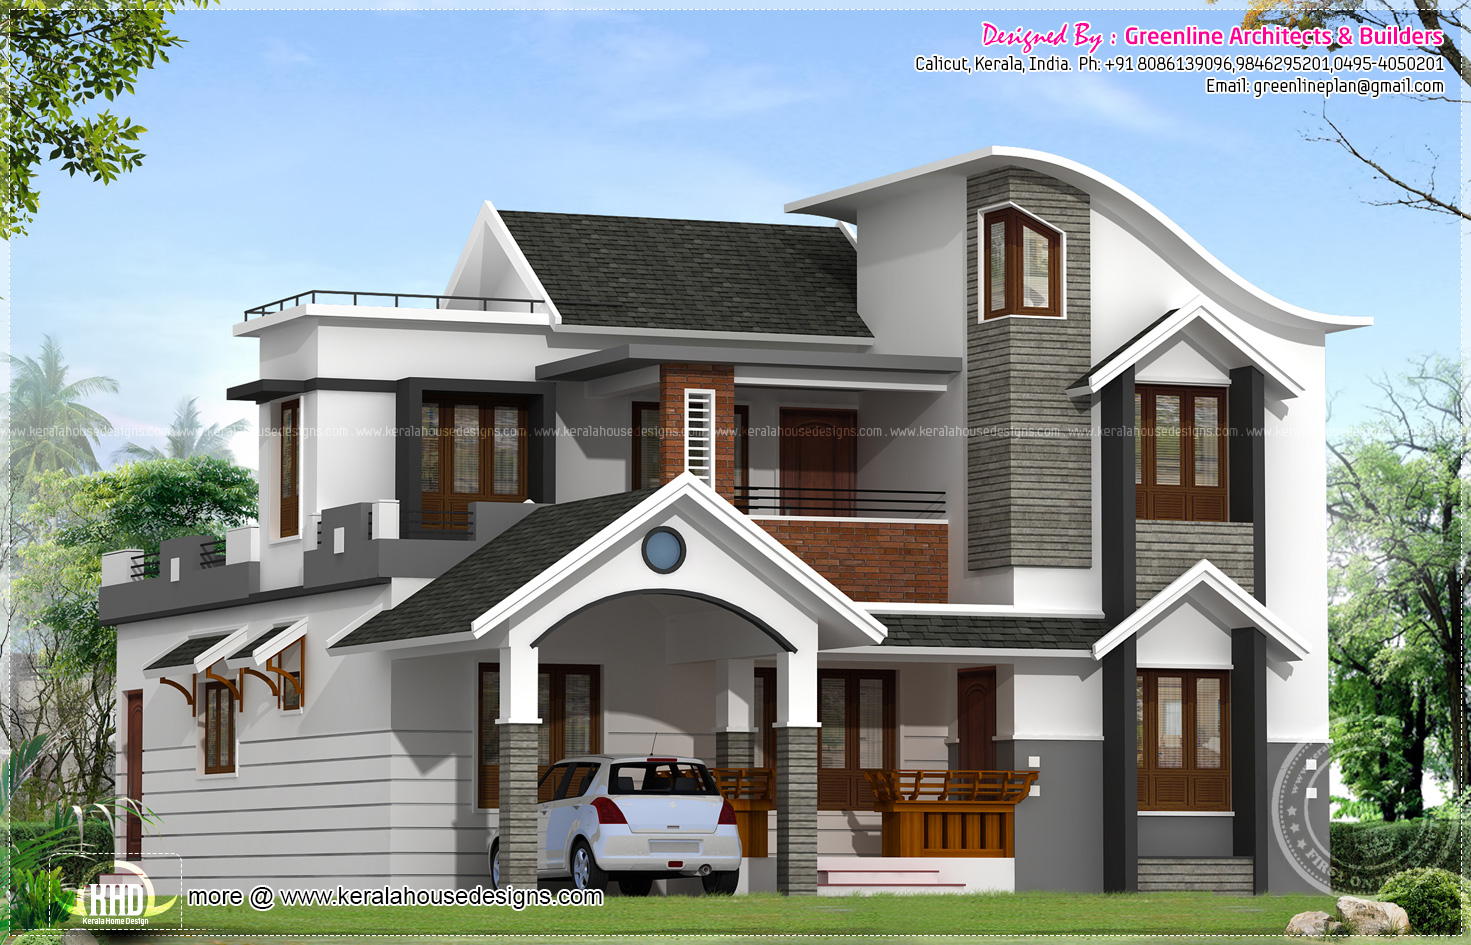 Modern house architecture in kerala kerala home design for Modern house plans with photos